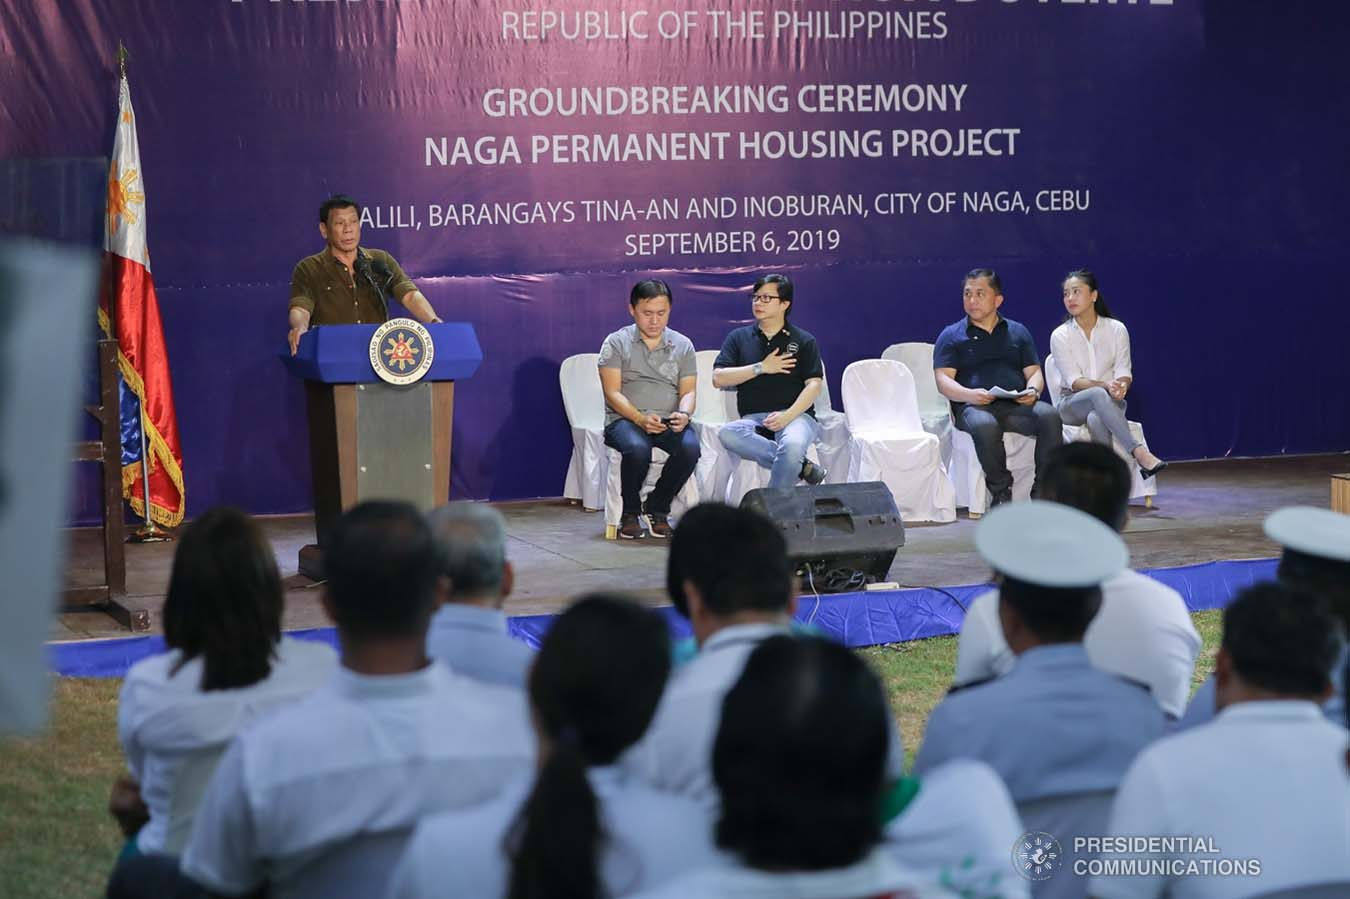 President Rodrigo Roa Duterte delivers his speech as he leads the groundbreaking ceremony and time capsule laying of the Naga Permanent Housing Project in Naga City, Cebu on September 6, 2019. ALFRED FRIAS/ PRESIDENTIAL PHOTO